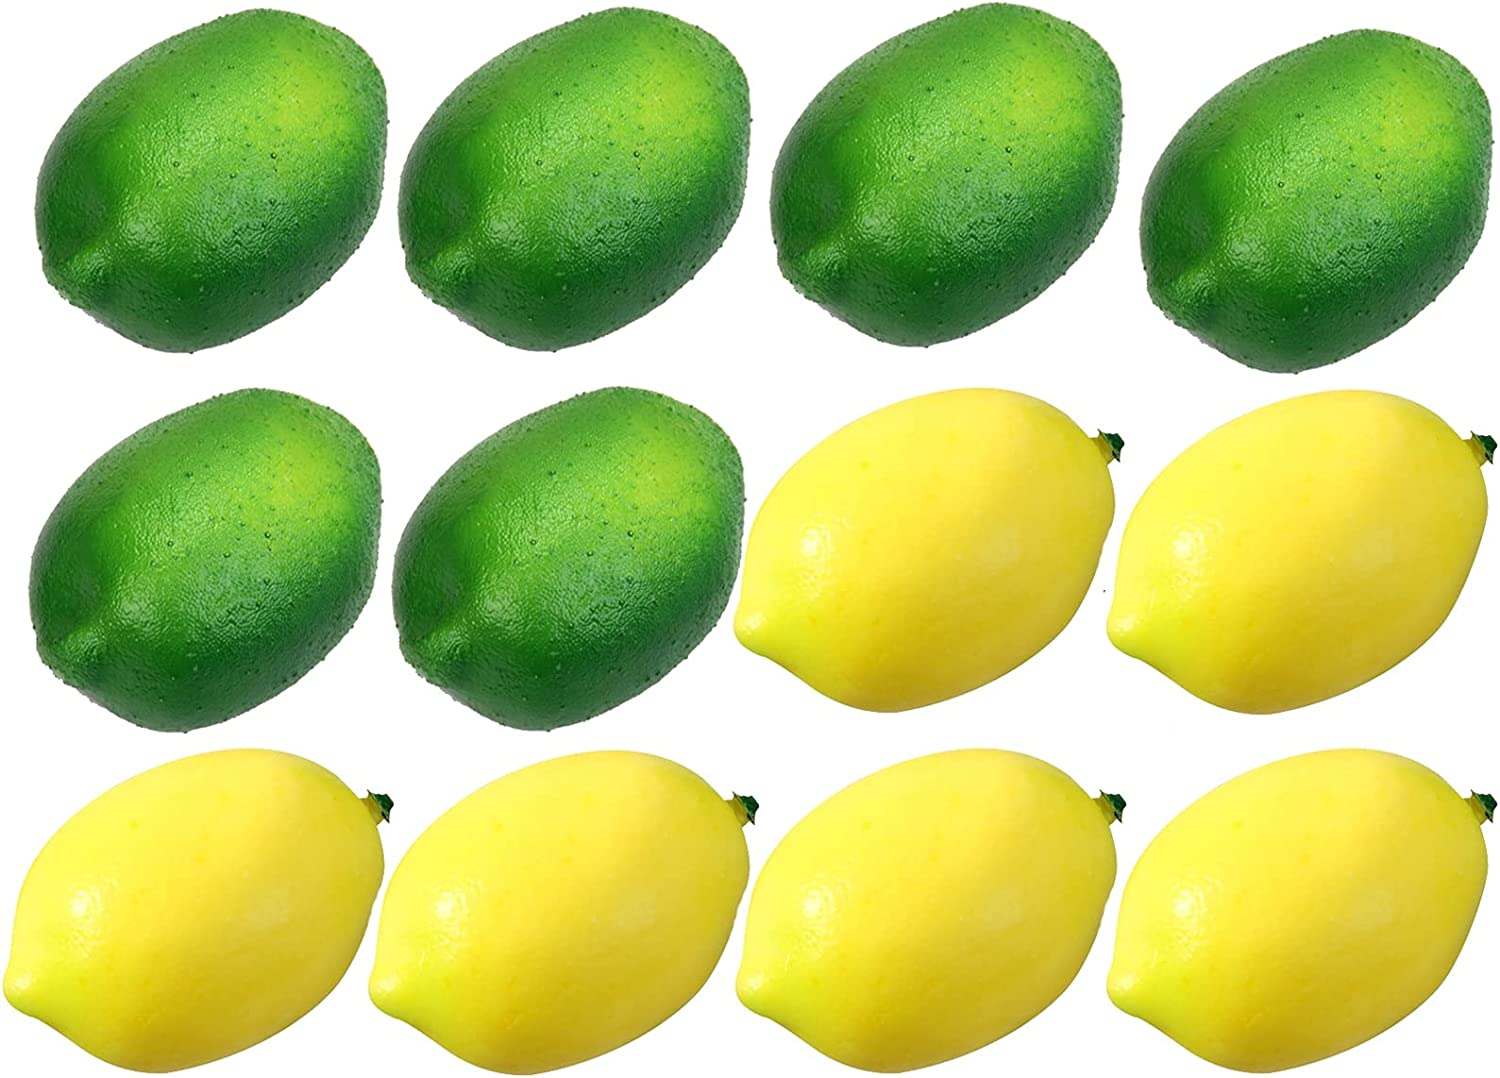 XDYFF Artificial Lemons for Frui Lifelike Decoration New product type Max 68% OFF